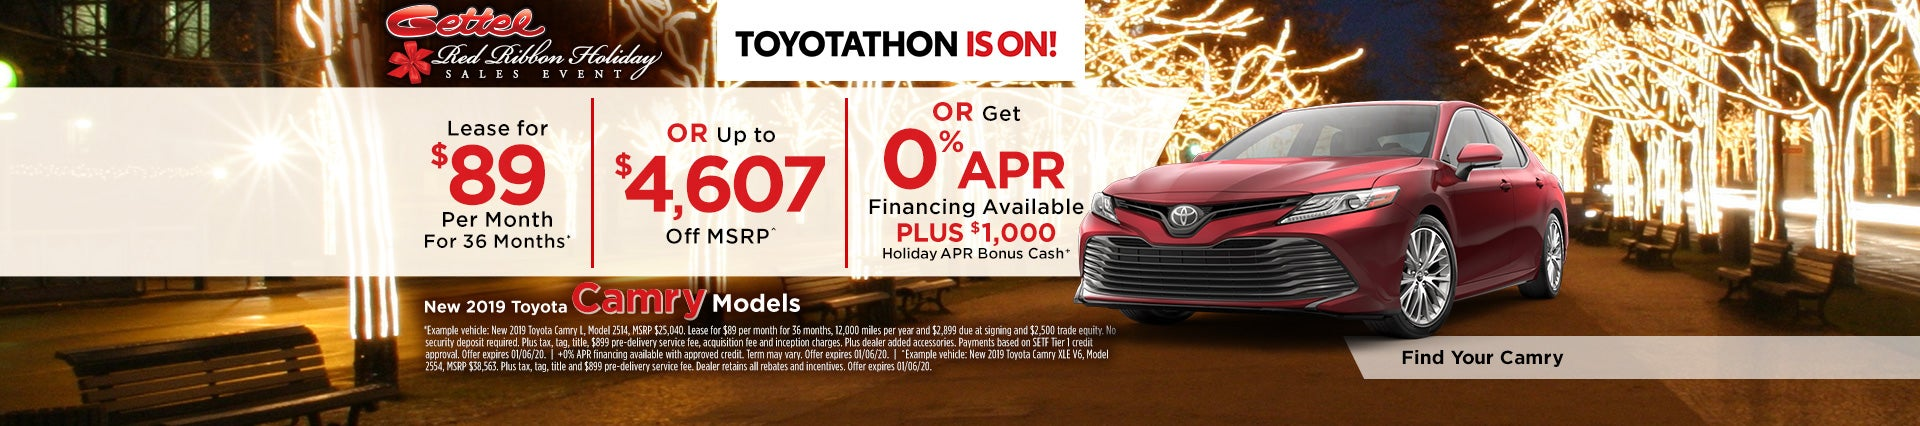 Toyota Gainesville Fl >> Toyota Dealership Used Cars Parts And Service Finance